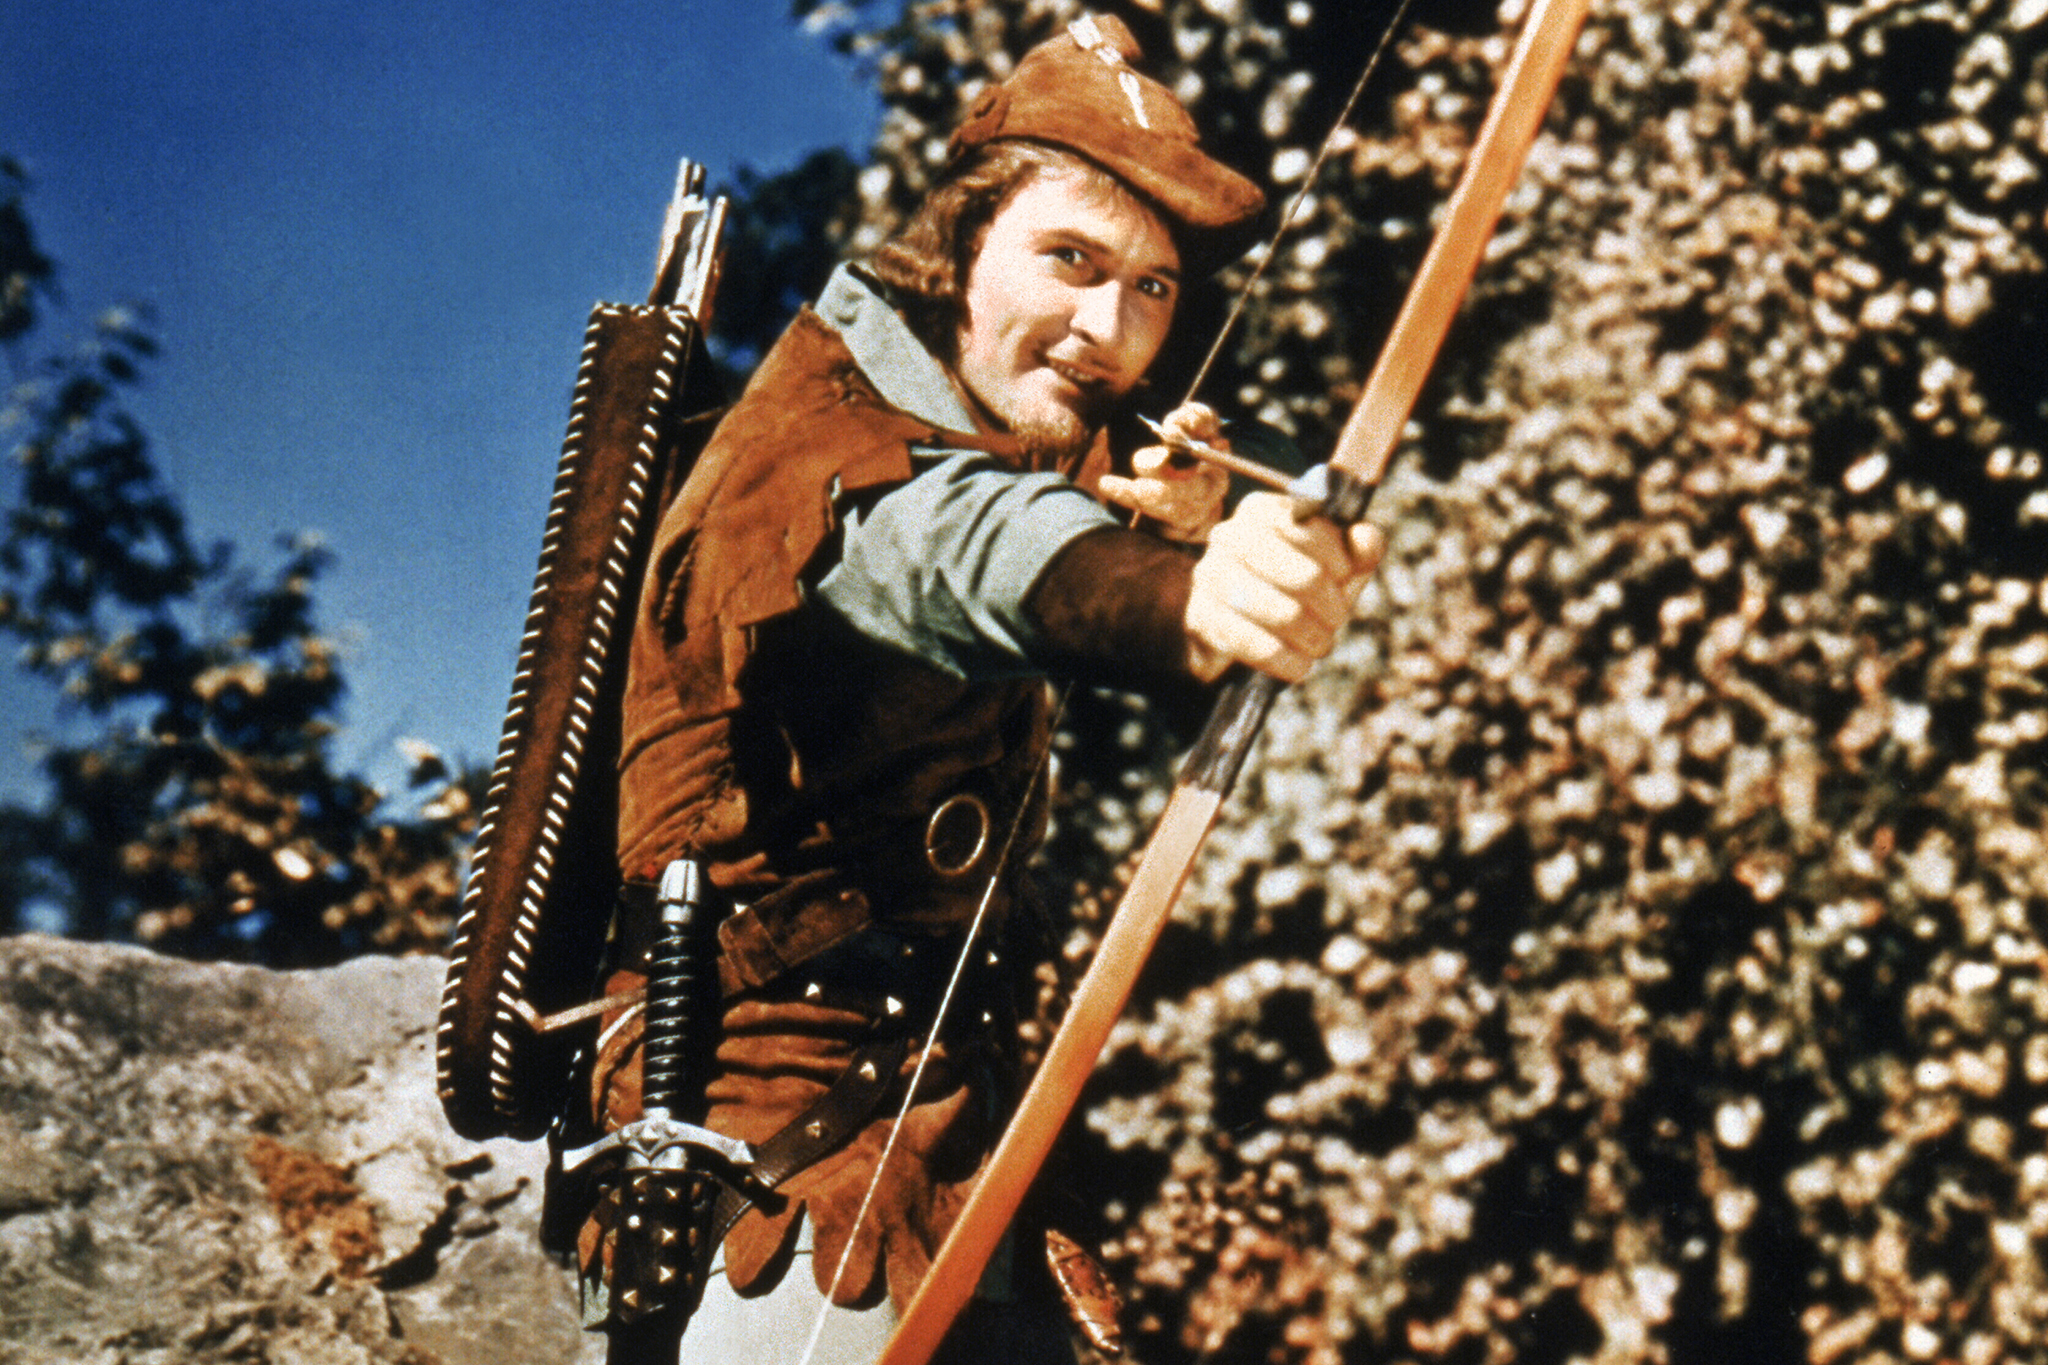 The Adventures of Robin Hood, 100 best action movies